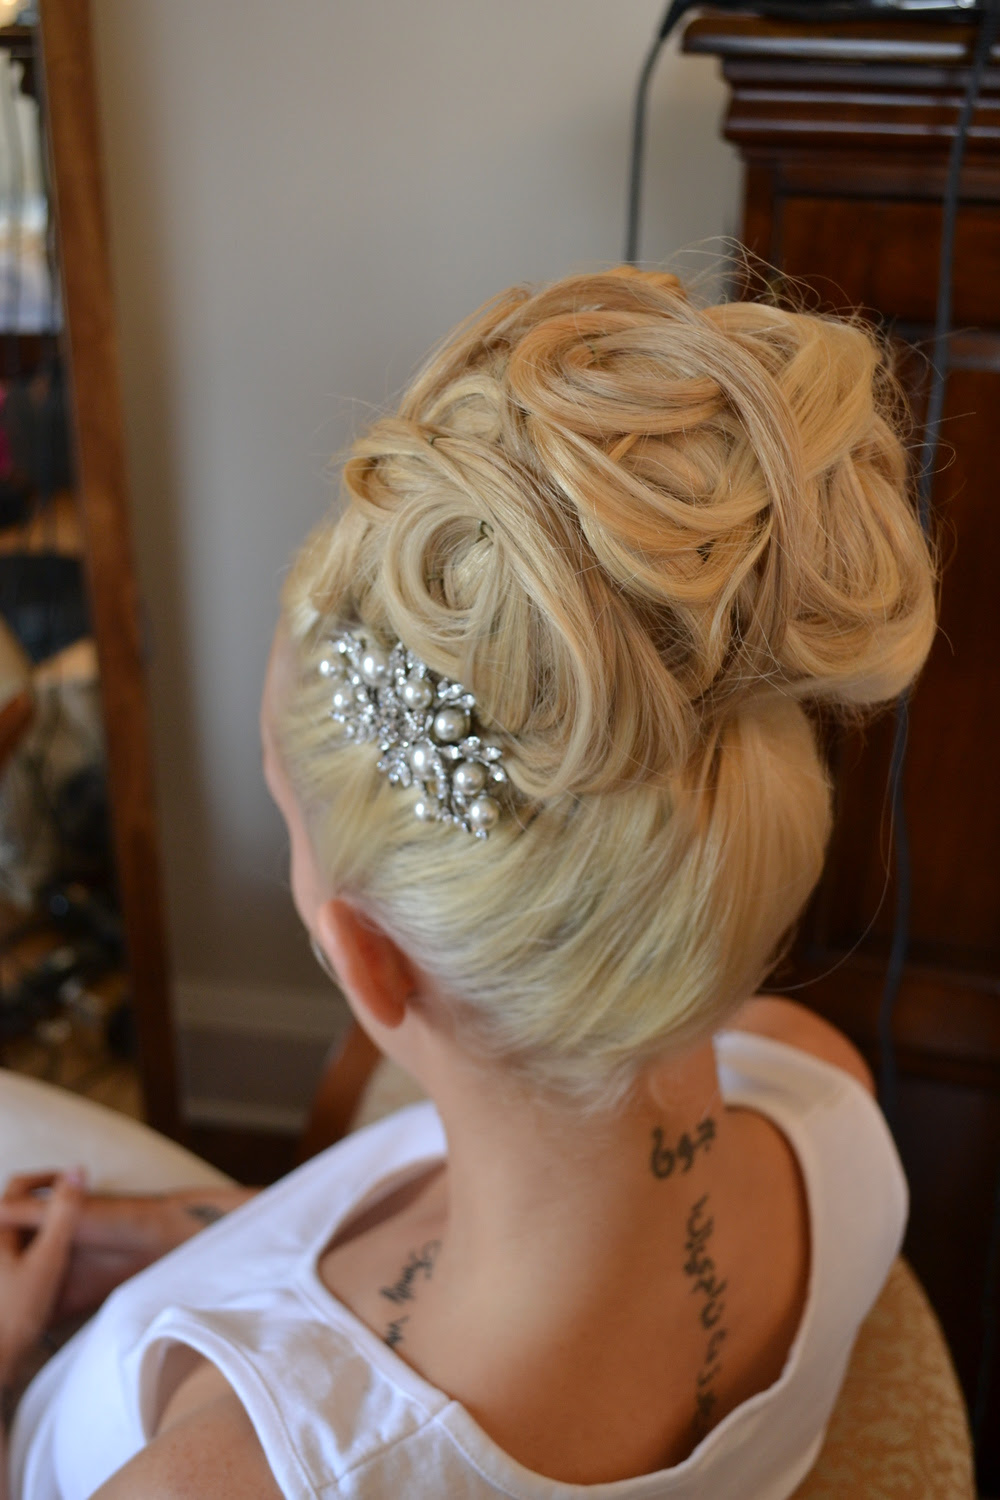 Soft Unstructured Wedding Hair Inspired by red carpet trends. 1000s of wedding photos